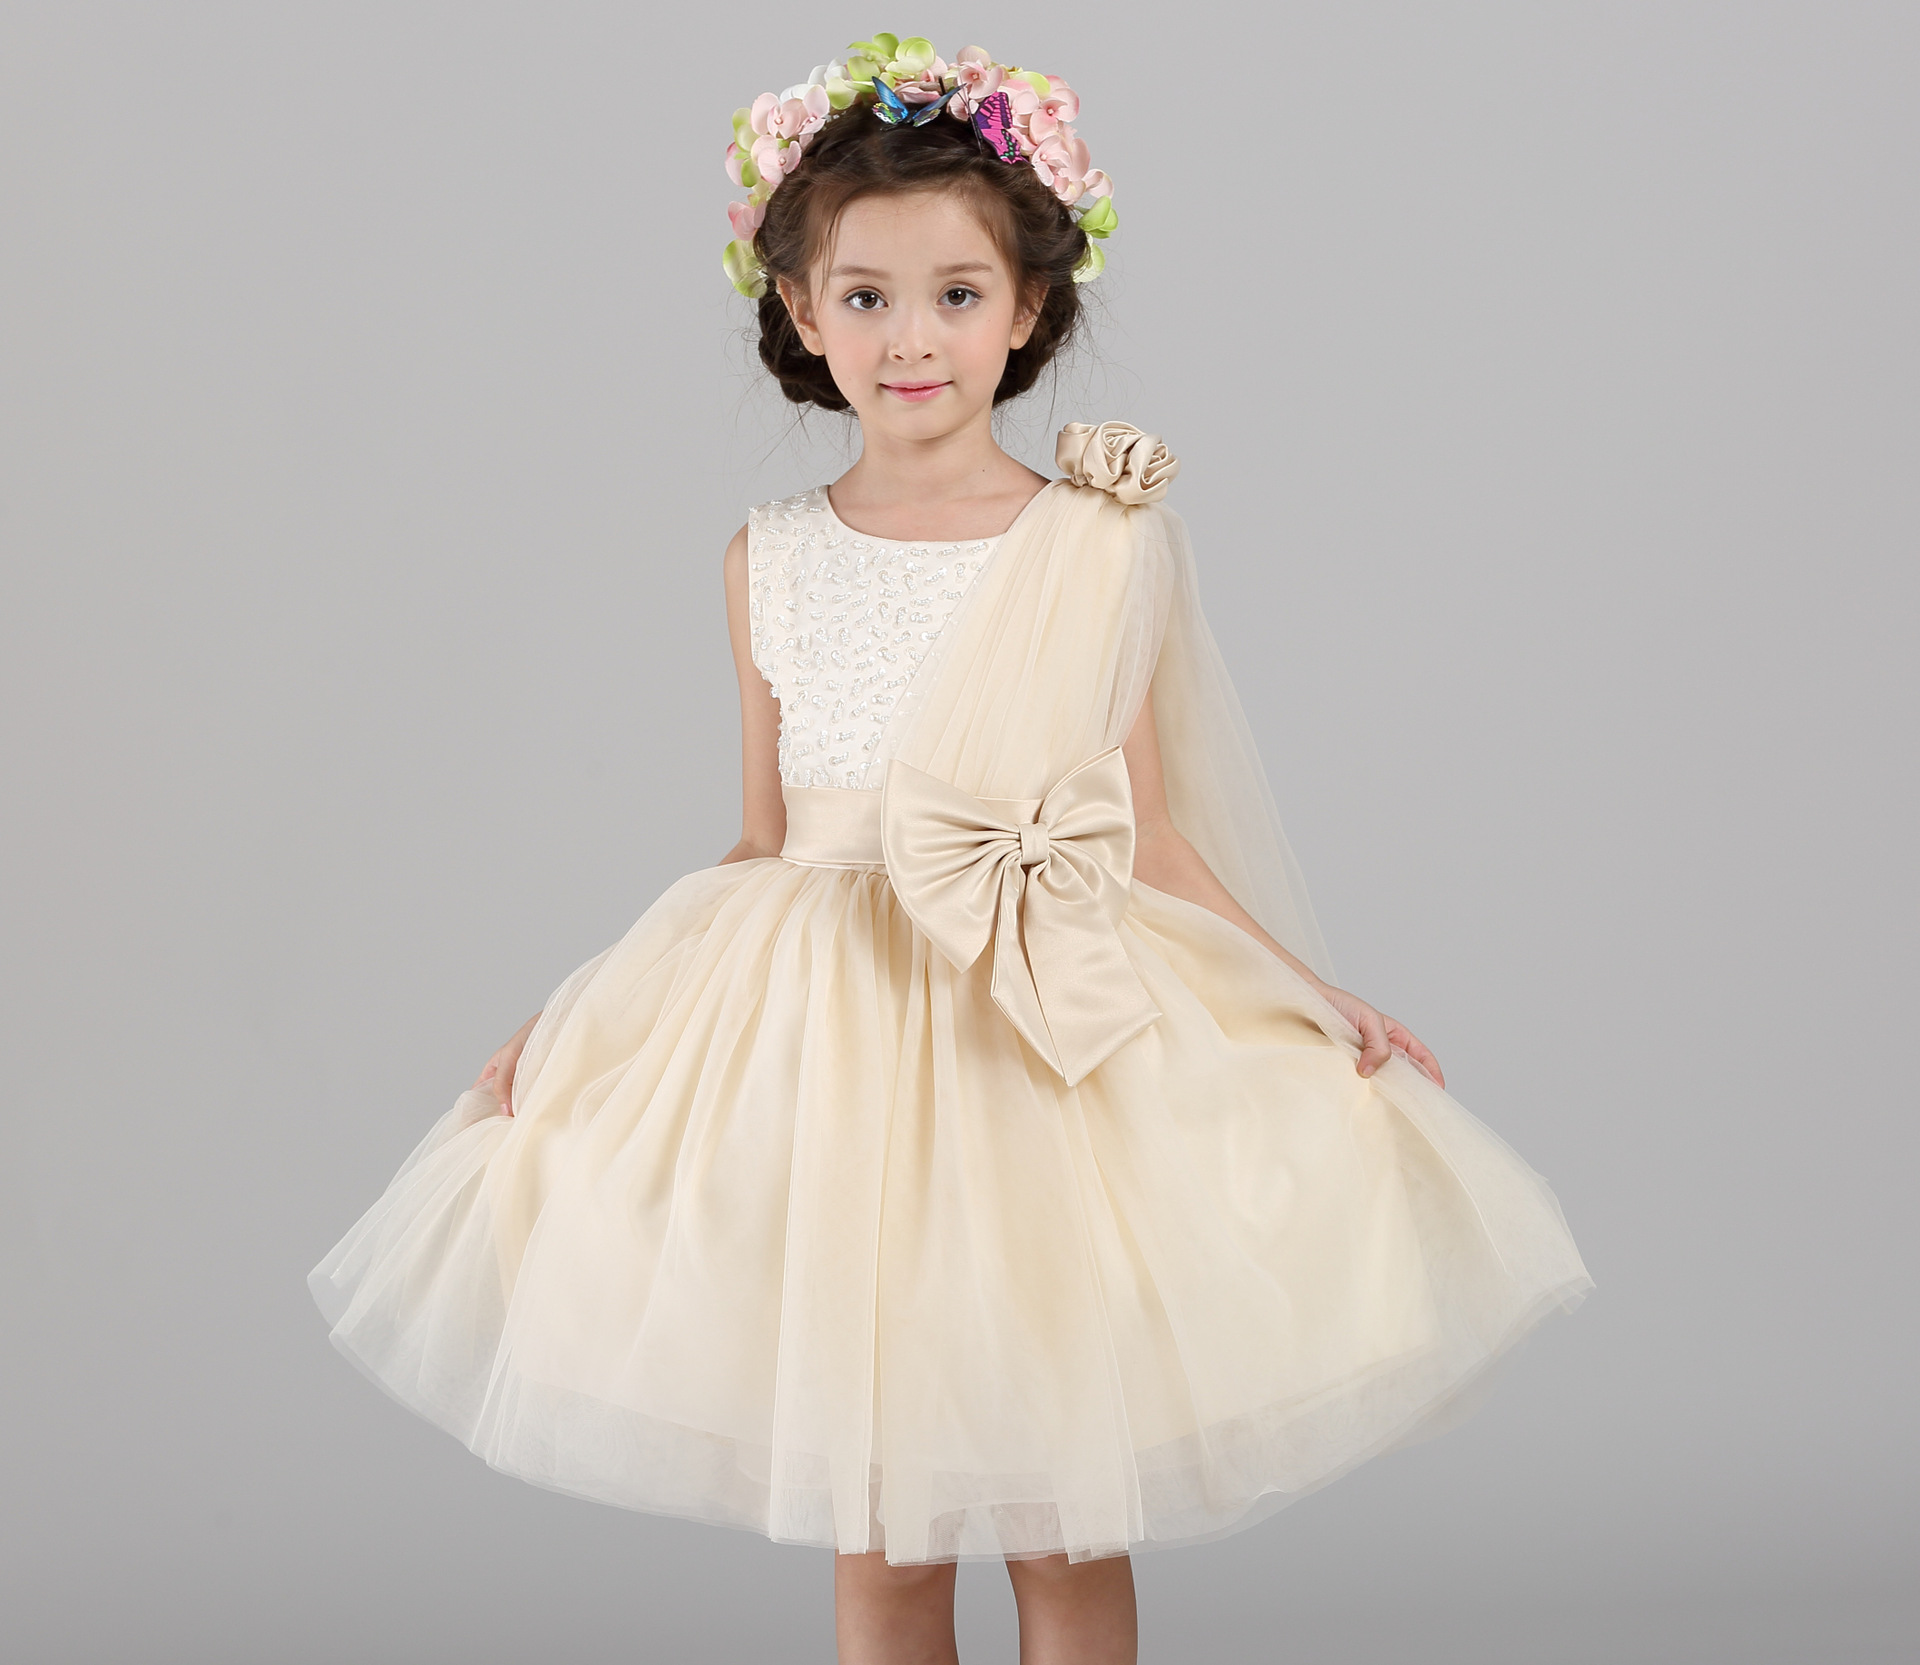 DHgate helps you get high quality discount beautiful dresses for kids at bulk prices. europegamexma.gq provides beautiful dresses for kids items from China top selected Baby & Kids Clothing, Baby, Kids & Maternity suppliers at wholesale prices with worldwide delivery.